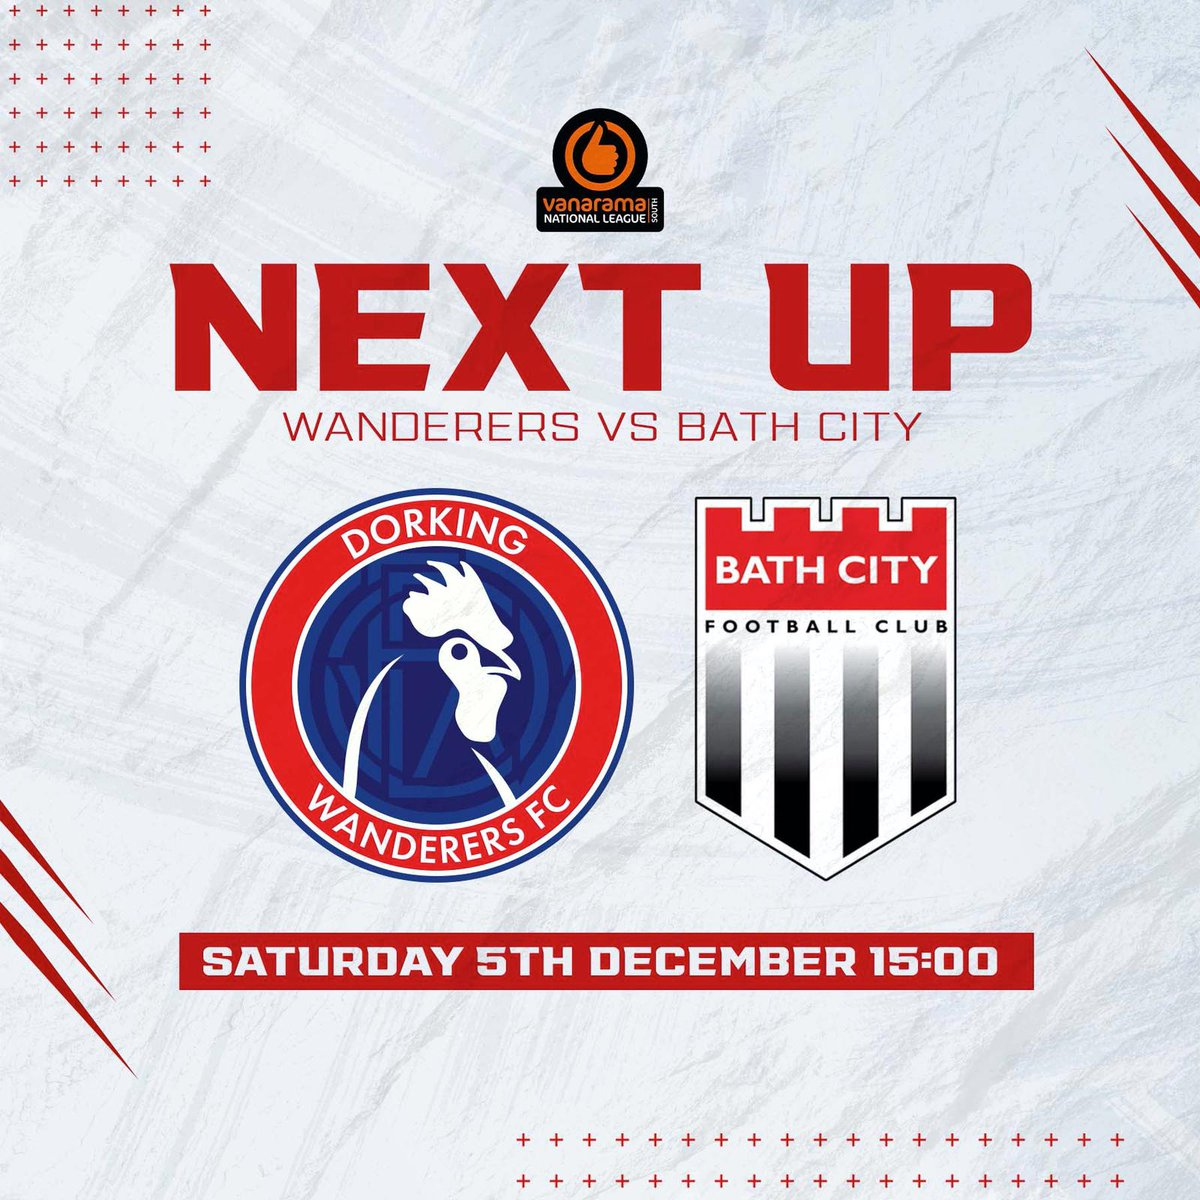 Today's game between @DorkingWDRS v @BathCity_FC may have sold out but don't despair we are streaming the game live, with commentary and it's only a fiver. Go to the website and follow the link and don't miss a kick. #livefootball #livecommentary #FansAreBack #Livestream